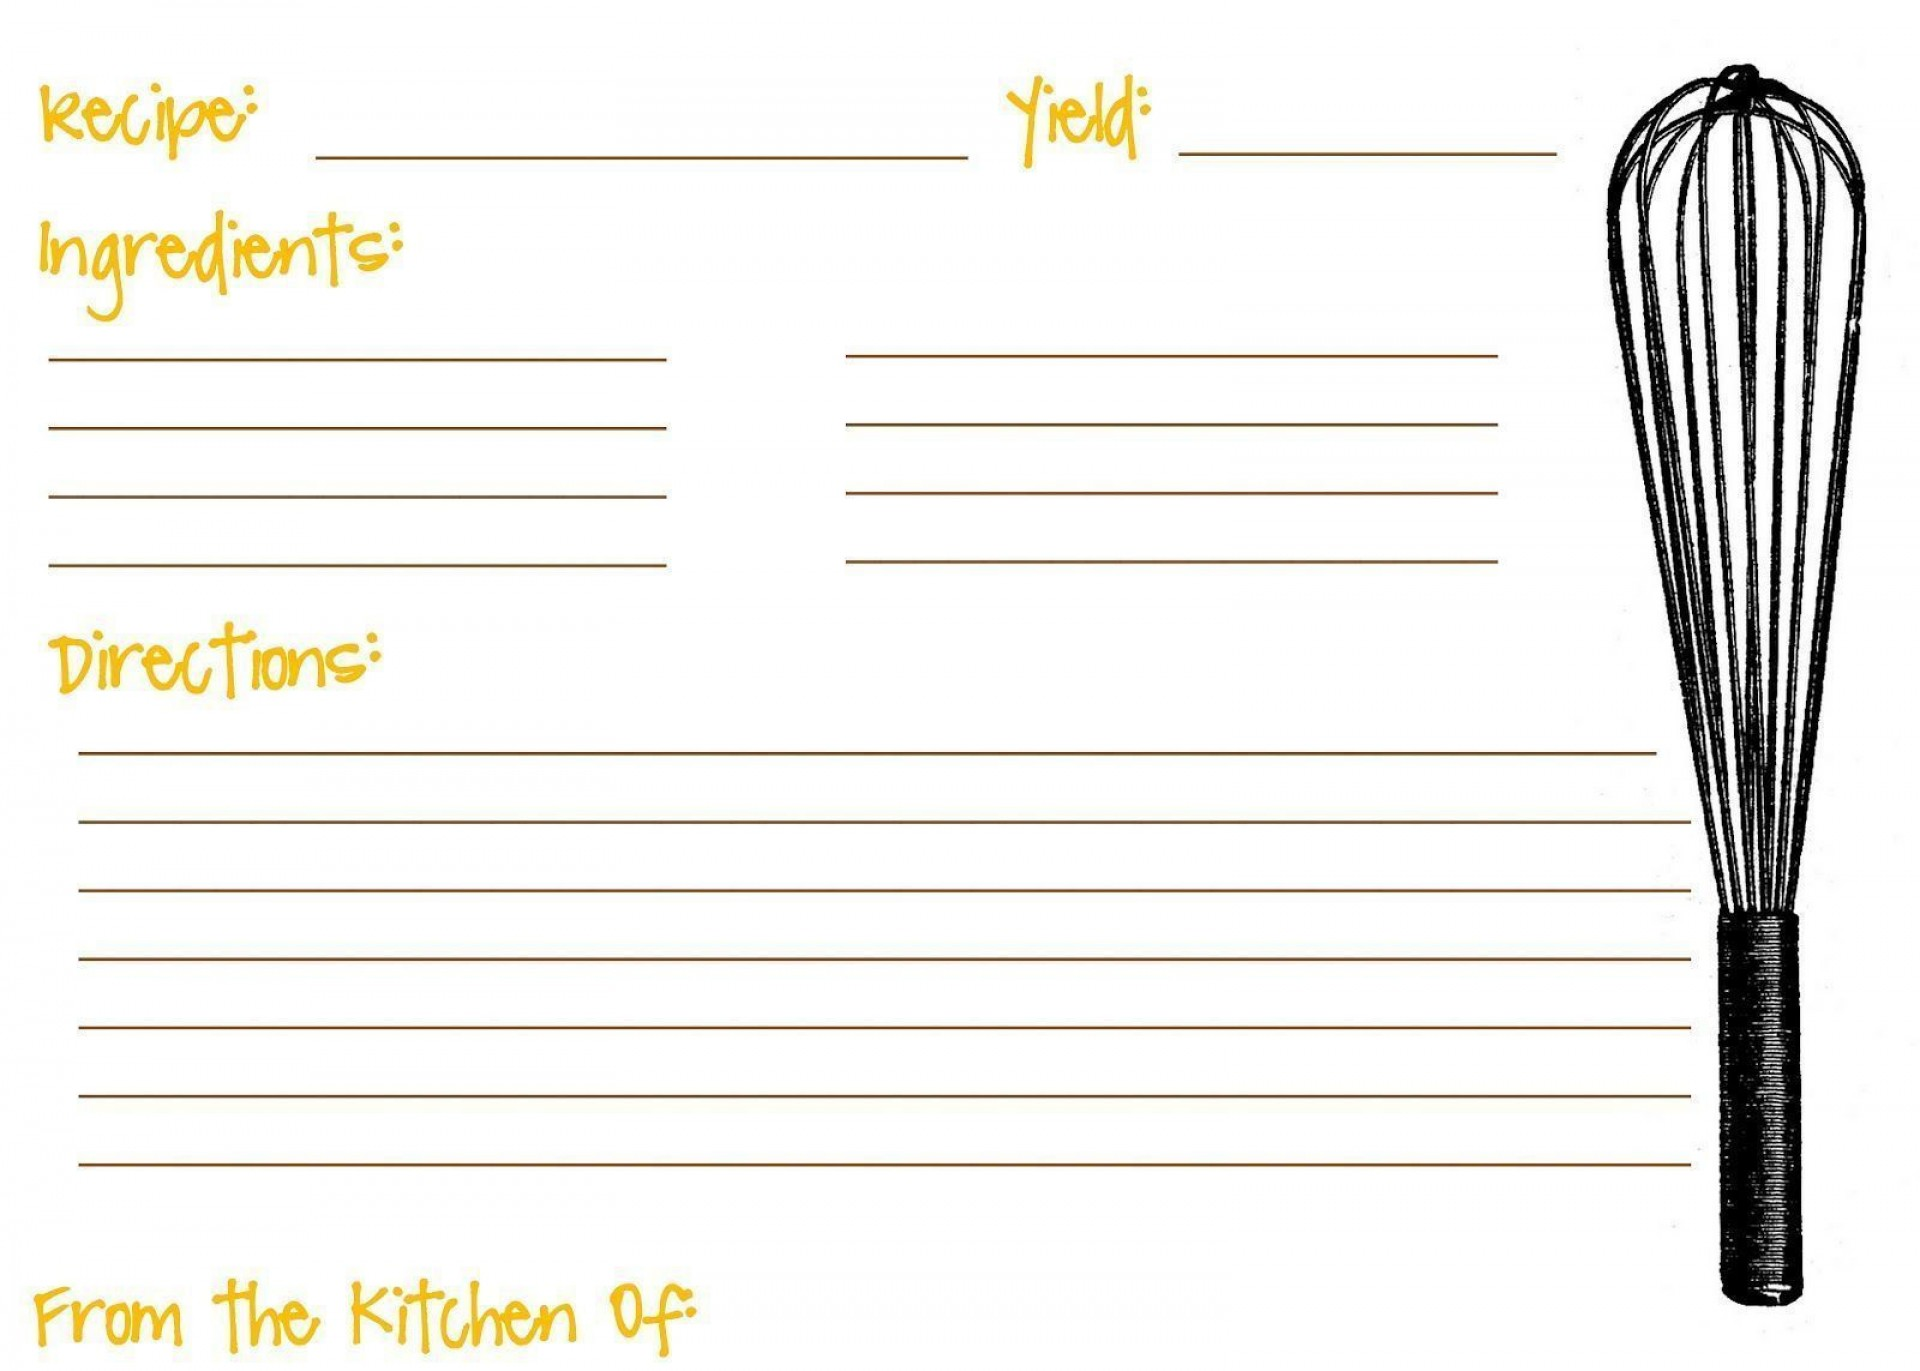 008 Shocking Recipe Card Template For Word Idea  Printable Blank Fillable1920